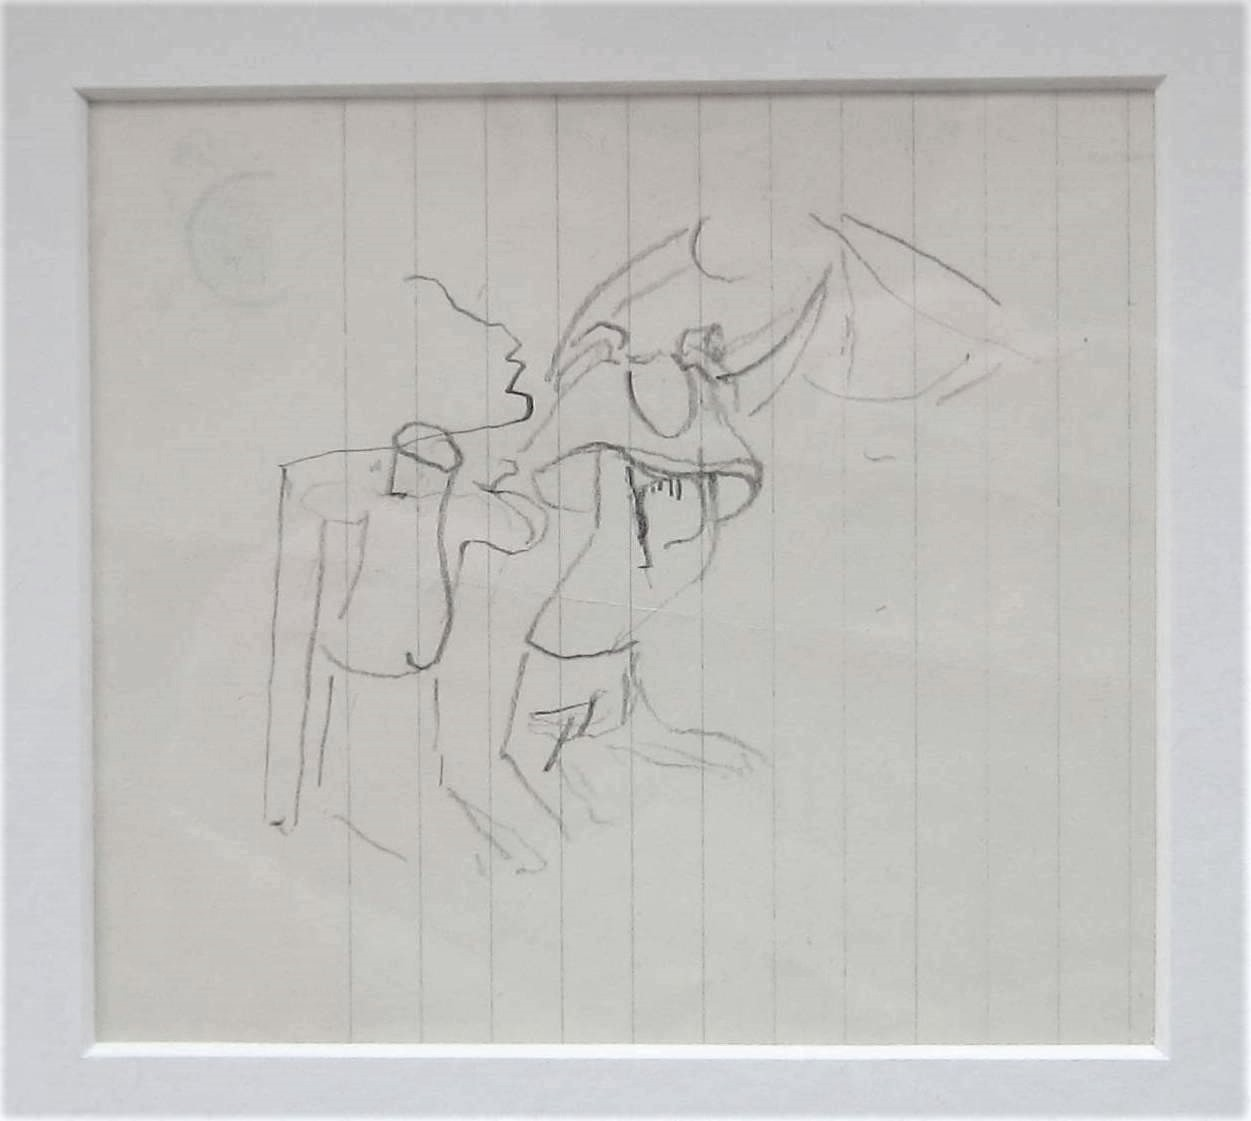 STANLEY SPENCER R.A. [1891-1959]. Figure Study. pencil on paper. studio stamp on reverse. 11 x 12 cm